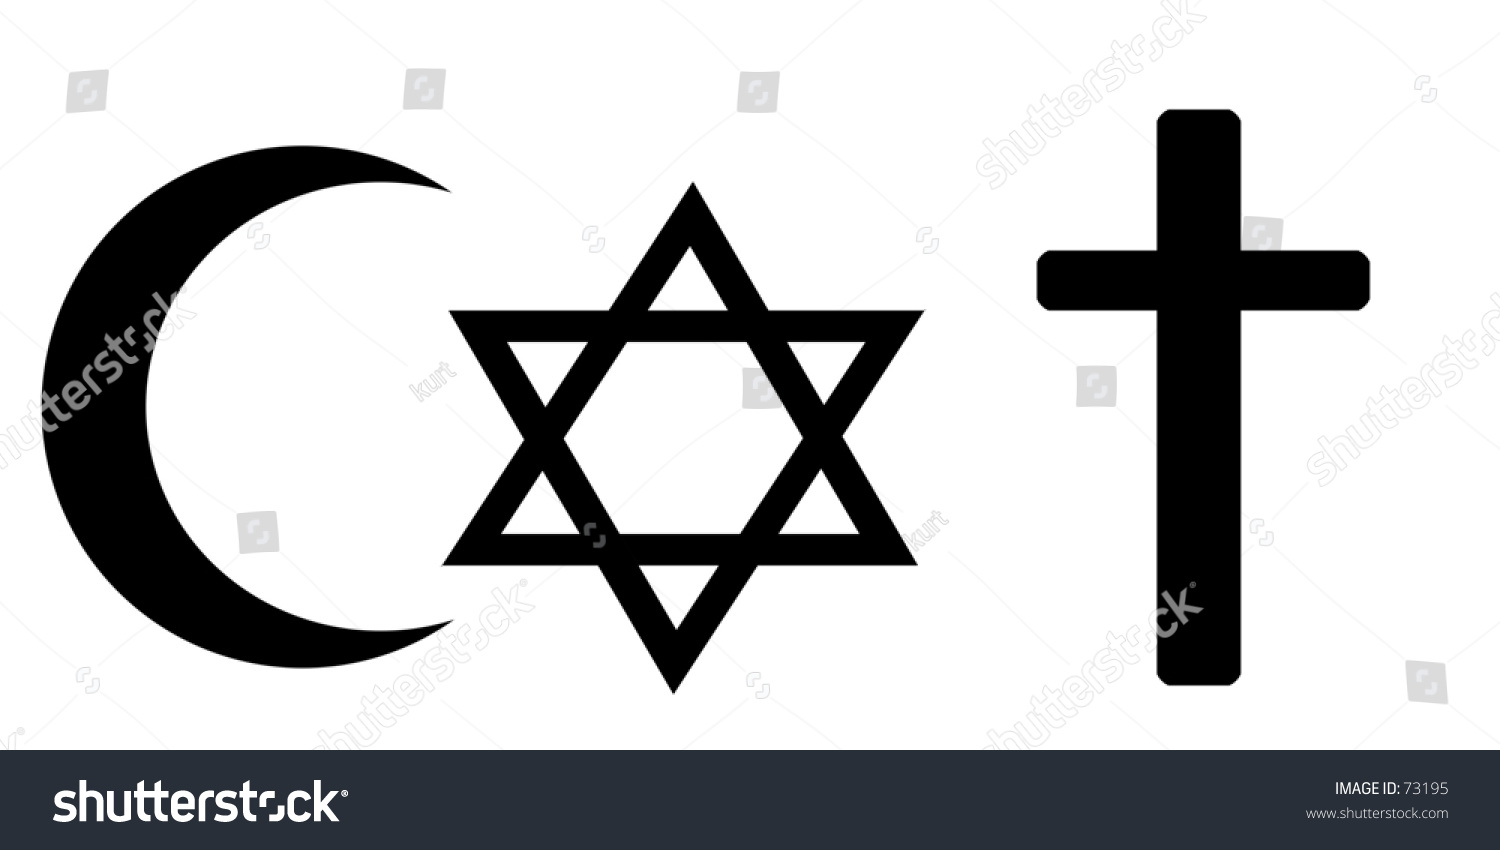 Darwin fish symbol meaning images symbol and sign ideas islamic symbols meanings choice image symbol and sign ideas religous symbol meanings jewish religous symbol meanings buycottarizona